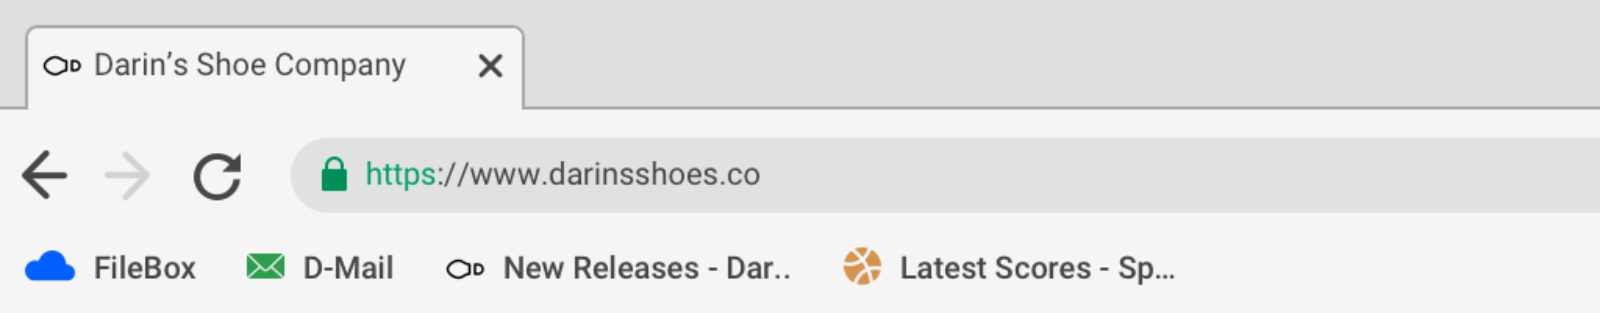 """Browser interface with a bookmarks toolbar. The toolbar contains four bookmark links. One is titled """"New Releases - Darin's Shoe Company"""""""